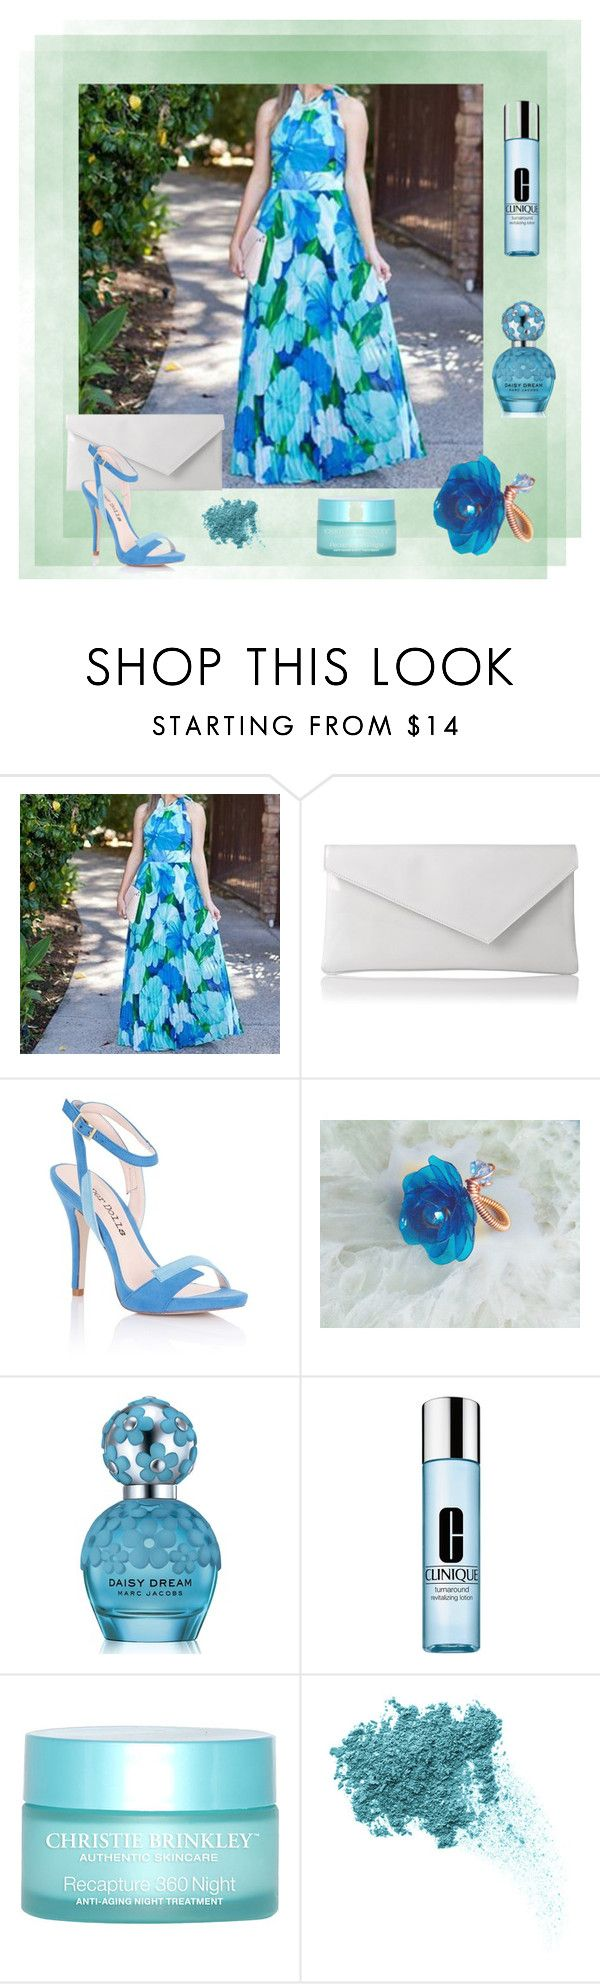 Blue & Turquoise by styledonna on Polyvore featuring moda, Joelle, Lipsy, L.K.Bennett, Bare Escentuals, Marc Jacobs, Clinique, SkinCare and Rene